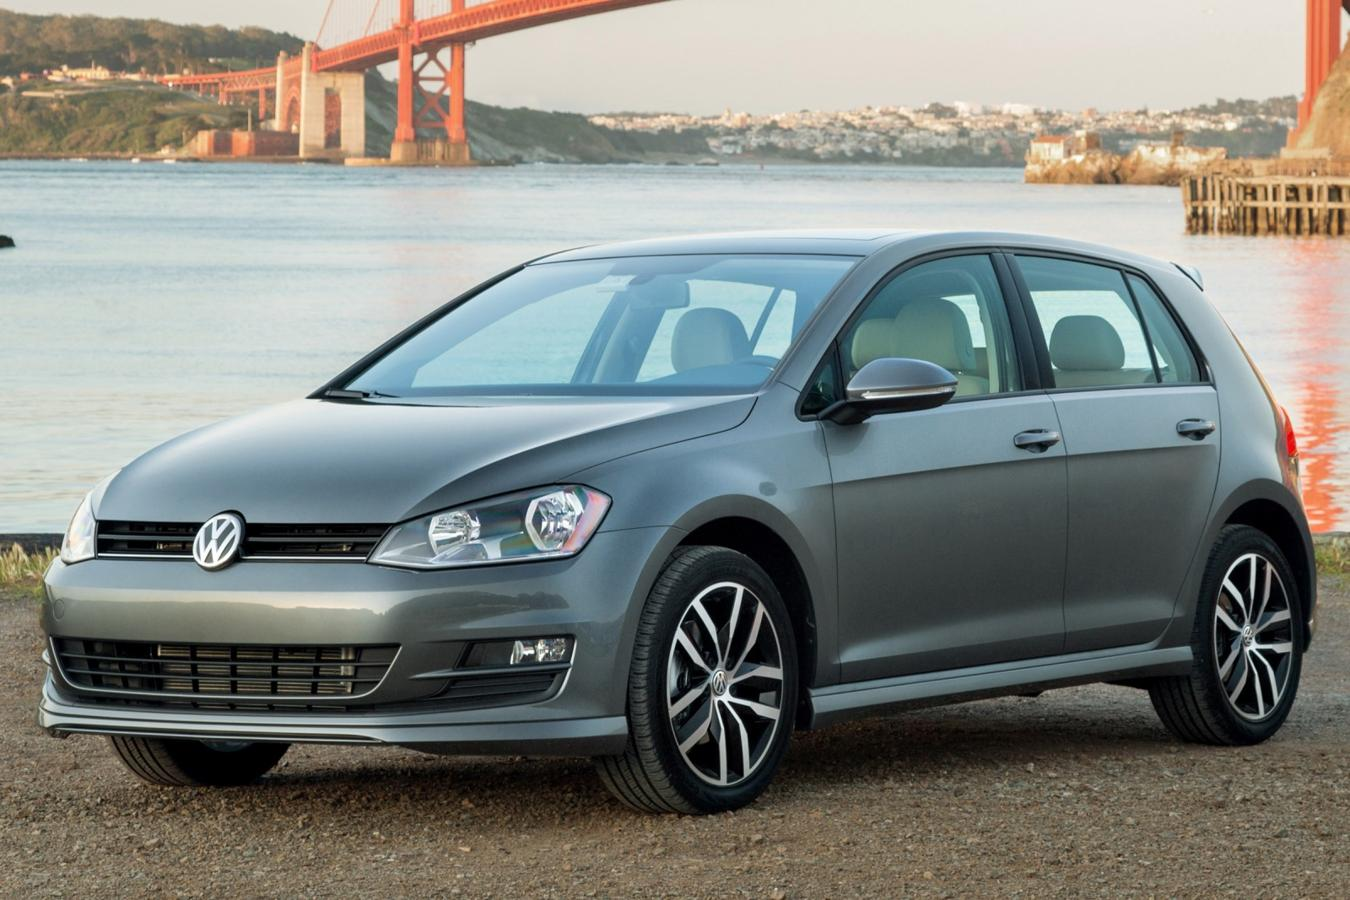 #4 Volkswagen GOLF